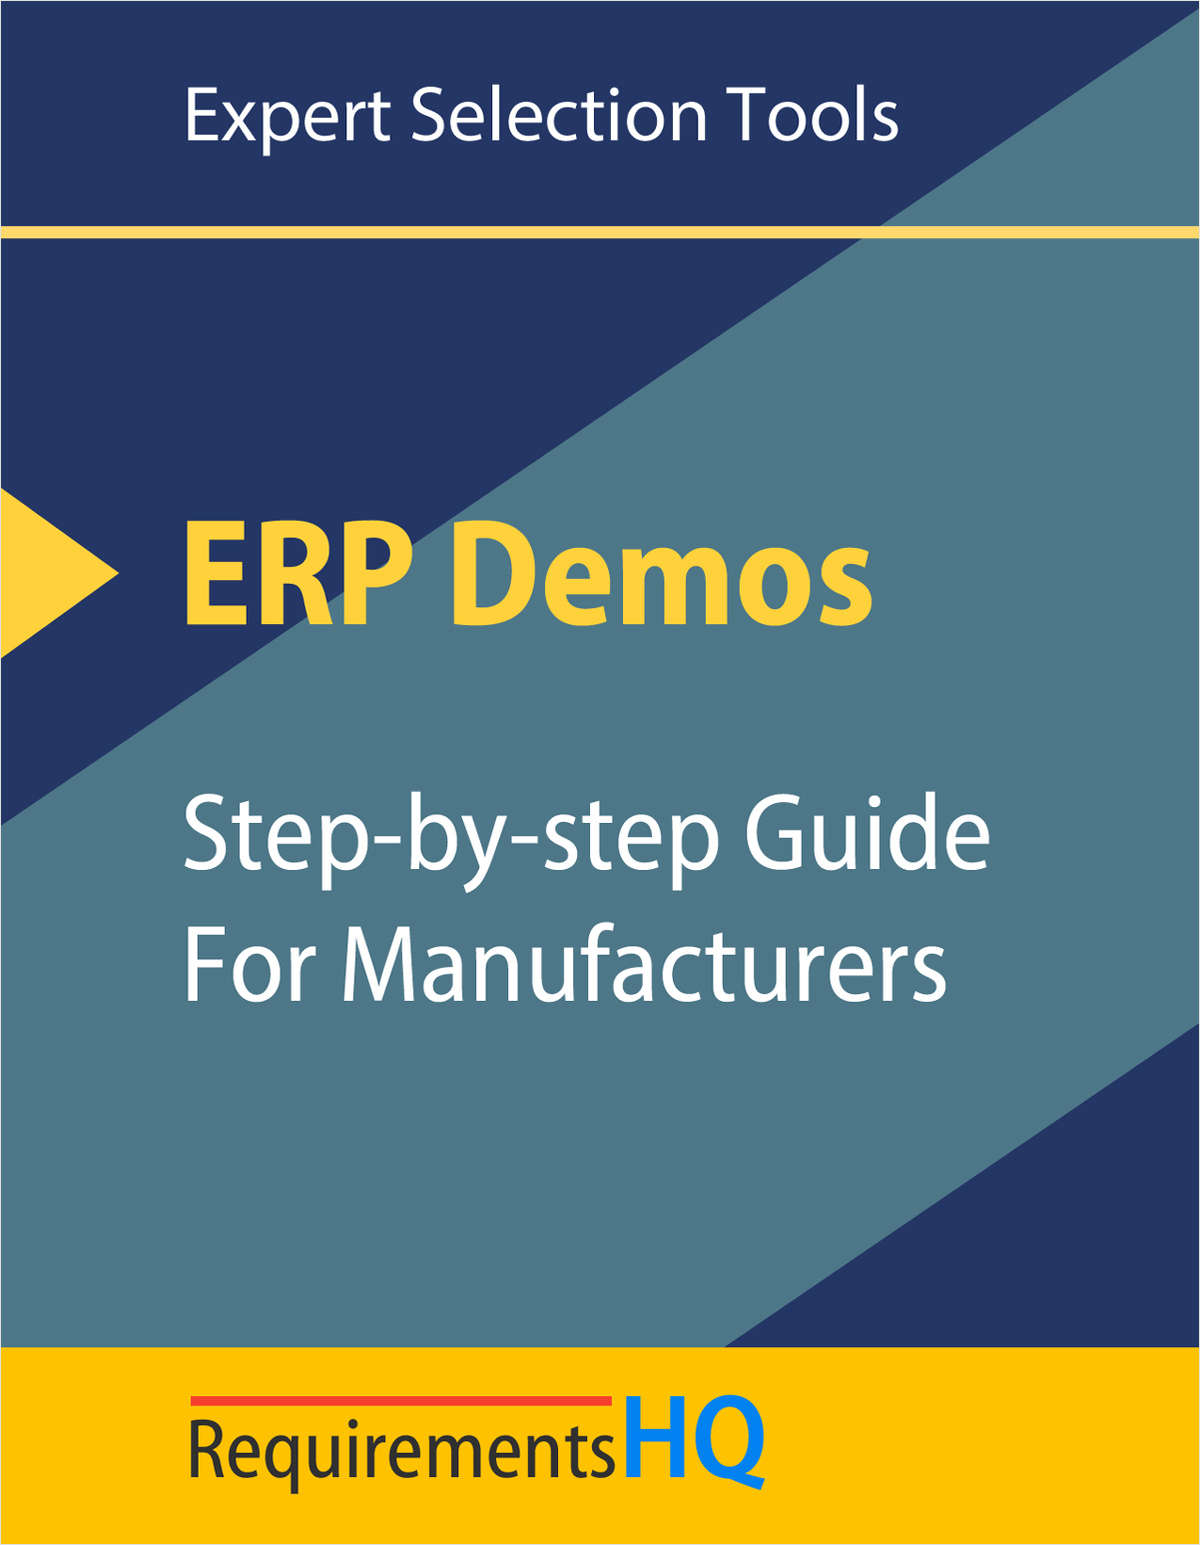 ERP Demos: A Step-by-step Guide for Manufacturers